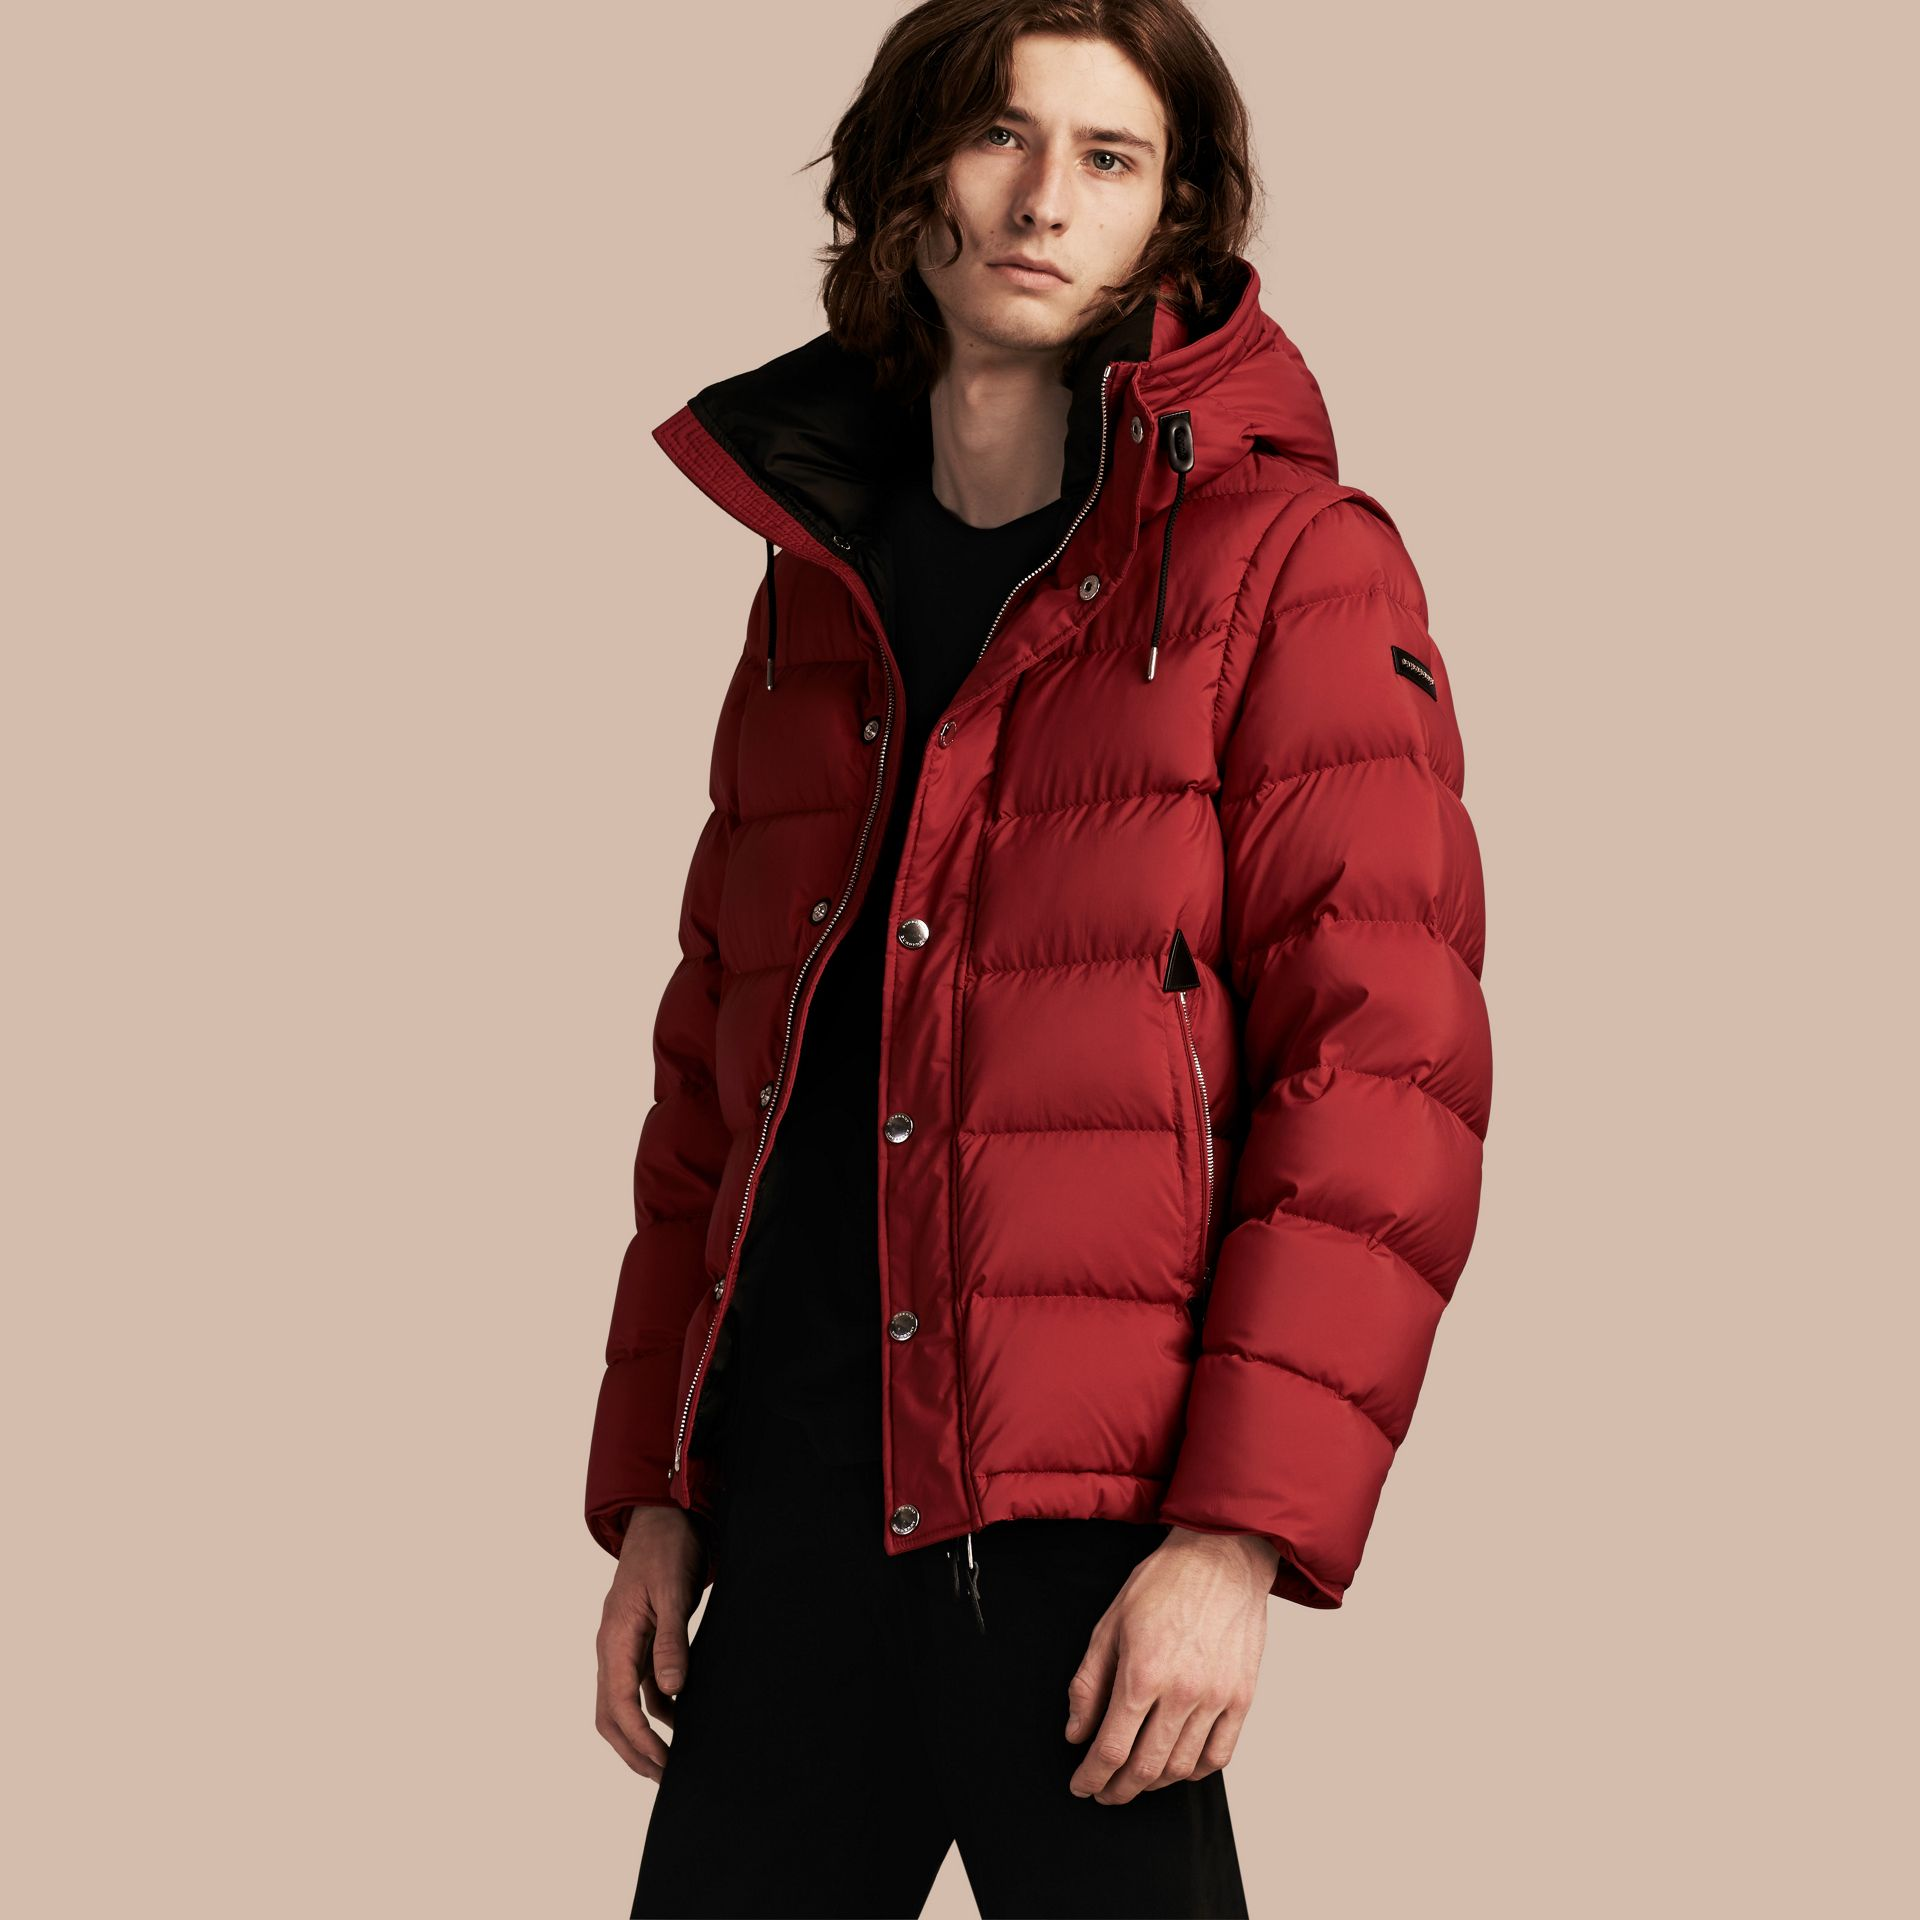 Parade red Down-filled Hooded Jacket with Detachable Sleeves Parade Red - gallery image 1